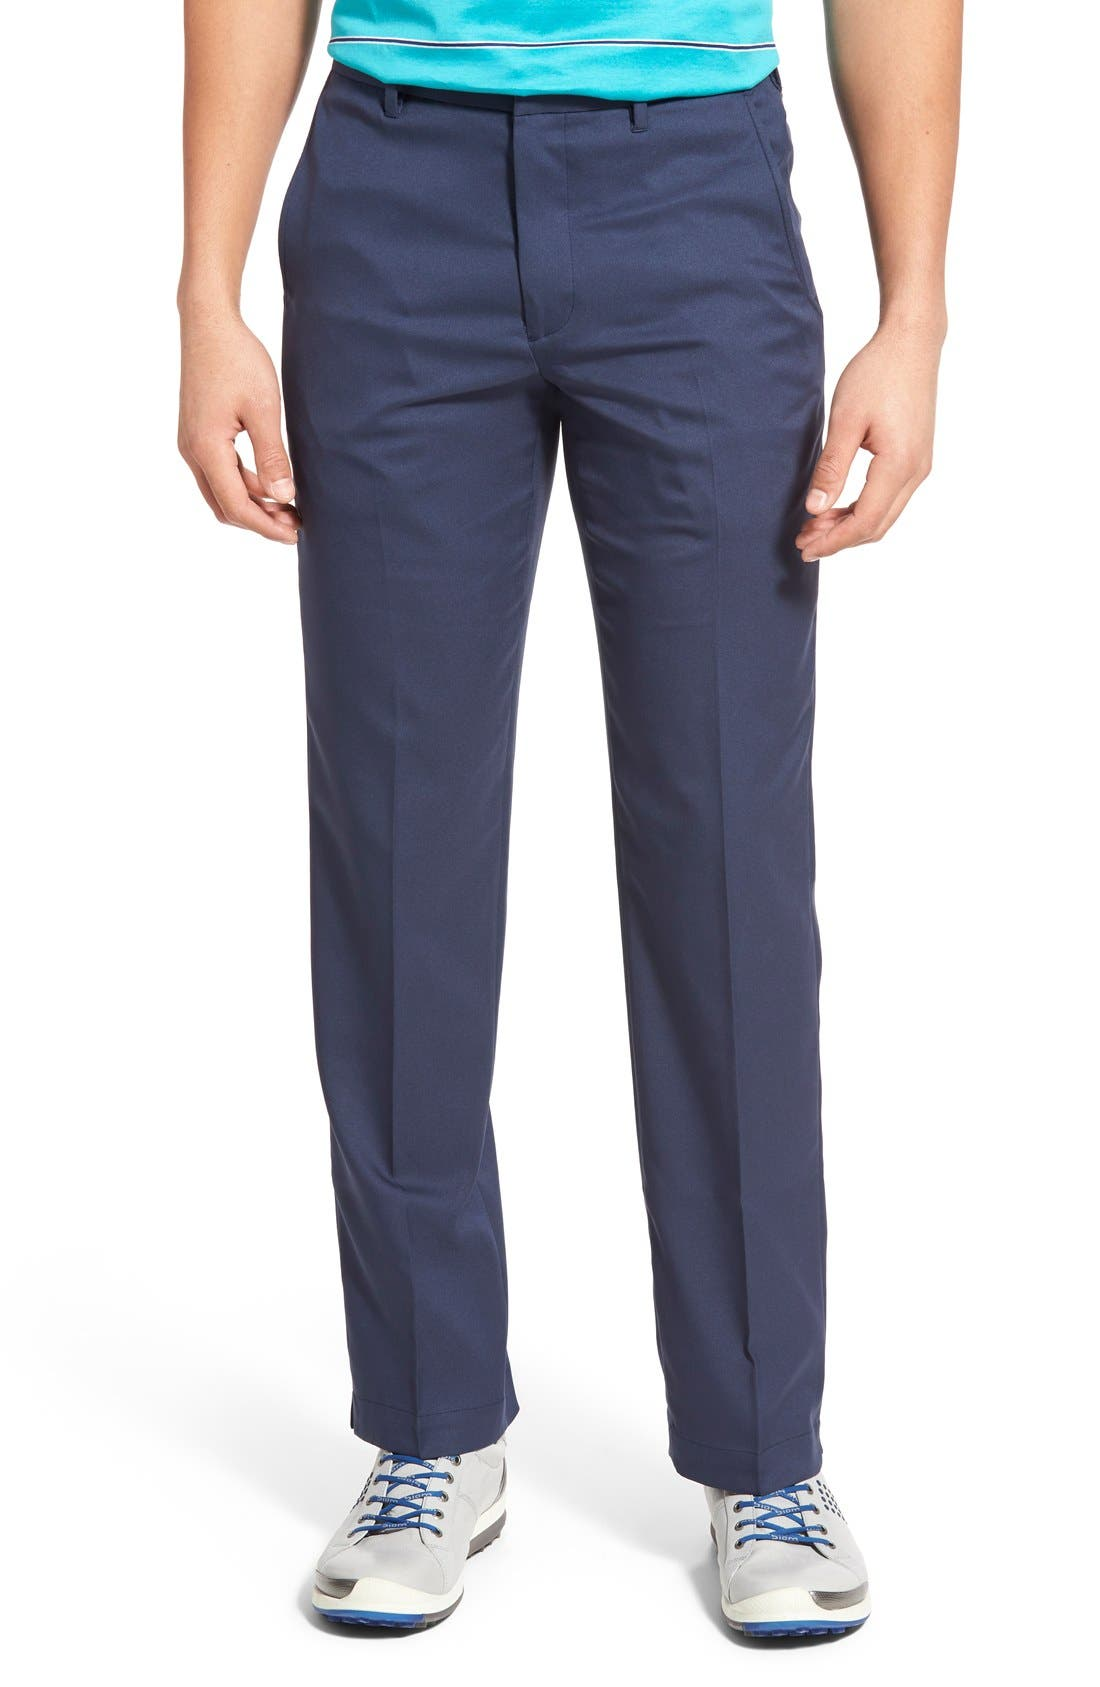 Bobby Jones 'Tech' Flat Front Wrinkle Free Golf Pants